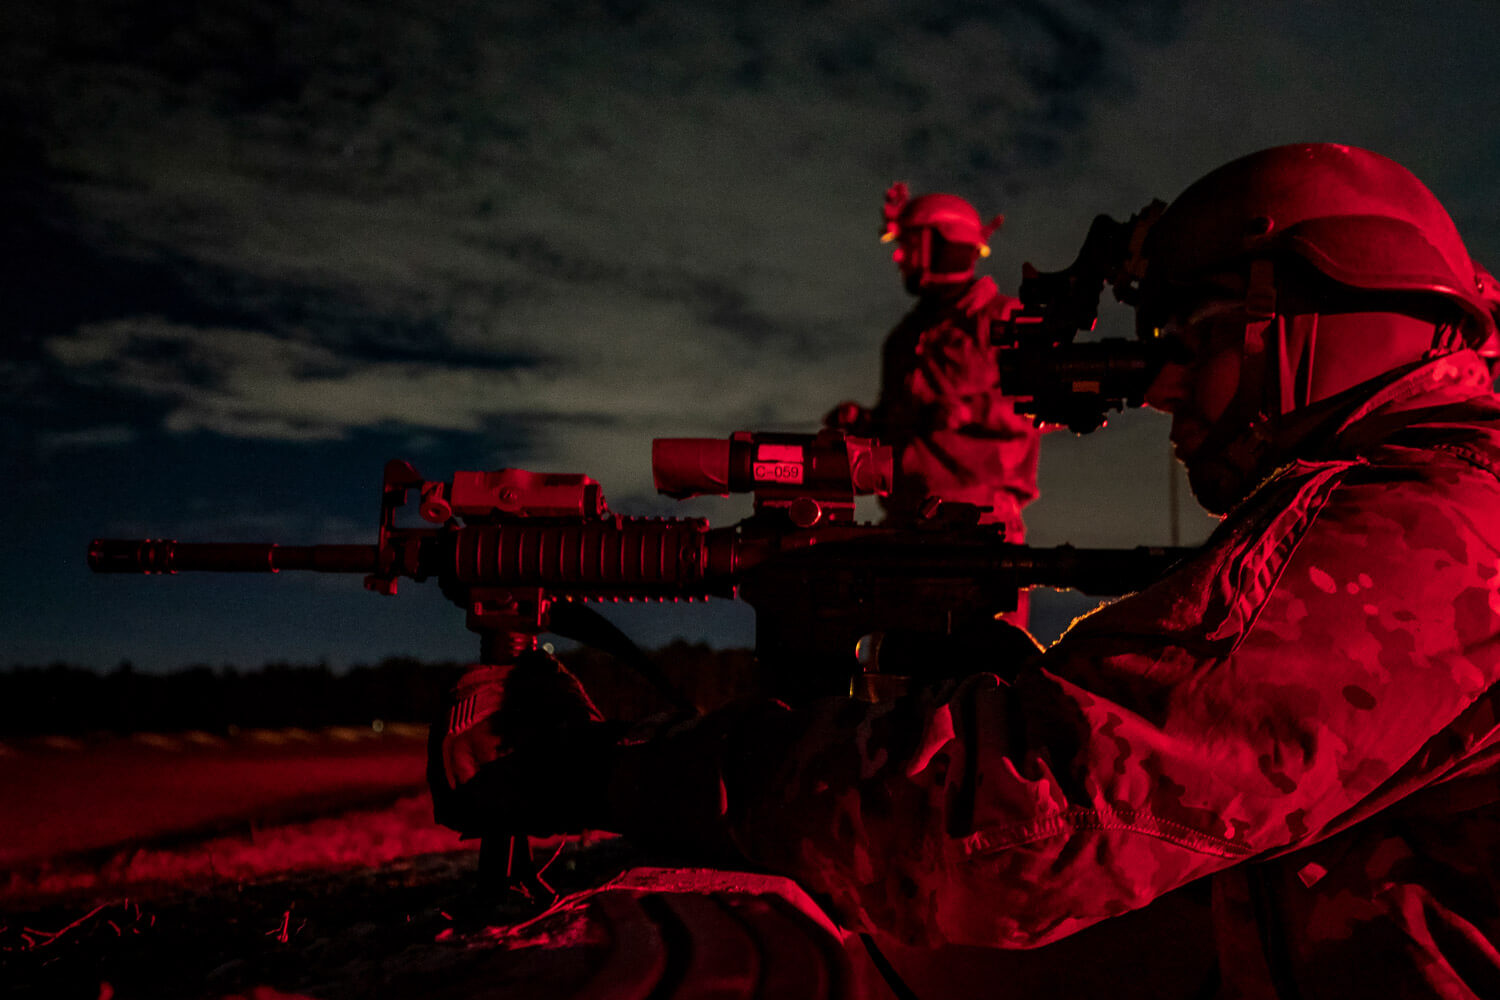 Army National Guard Soldiers with New Jersey's C Troop, 1st Squadron, 102nd Cavalry Regiment, prepare for night shooting during weapons qualifications on Joint Base McGuire-Dix-Lakehurst, N.J., January 2019. The qualifications were held in advance of the troop's deployment to North Africa in support of Combined Joint Task Force - Horn of Africa. New Jersey National Guard photo by MSgt Matt Hecht